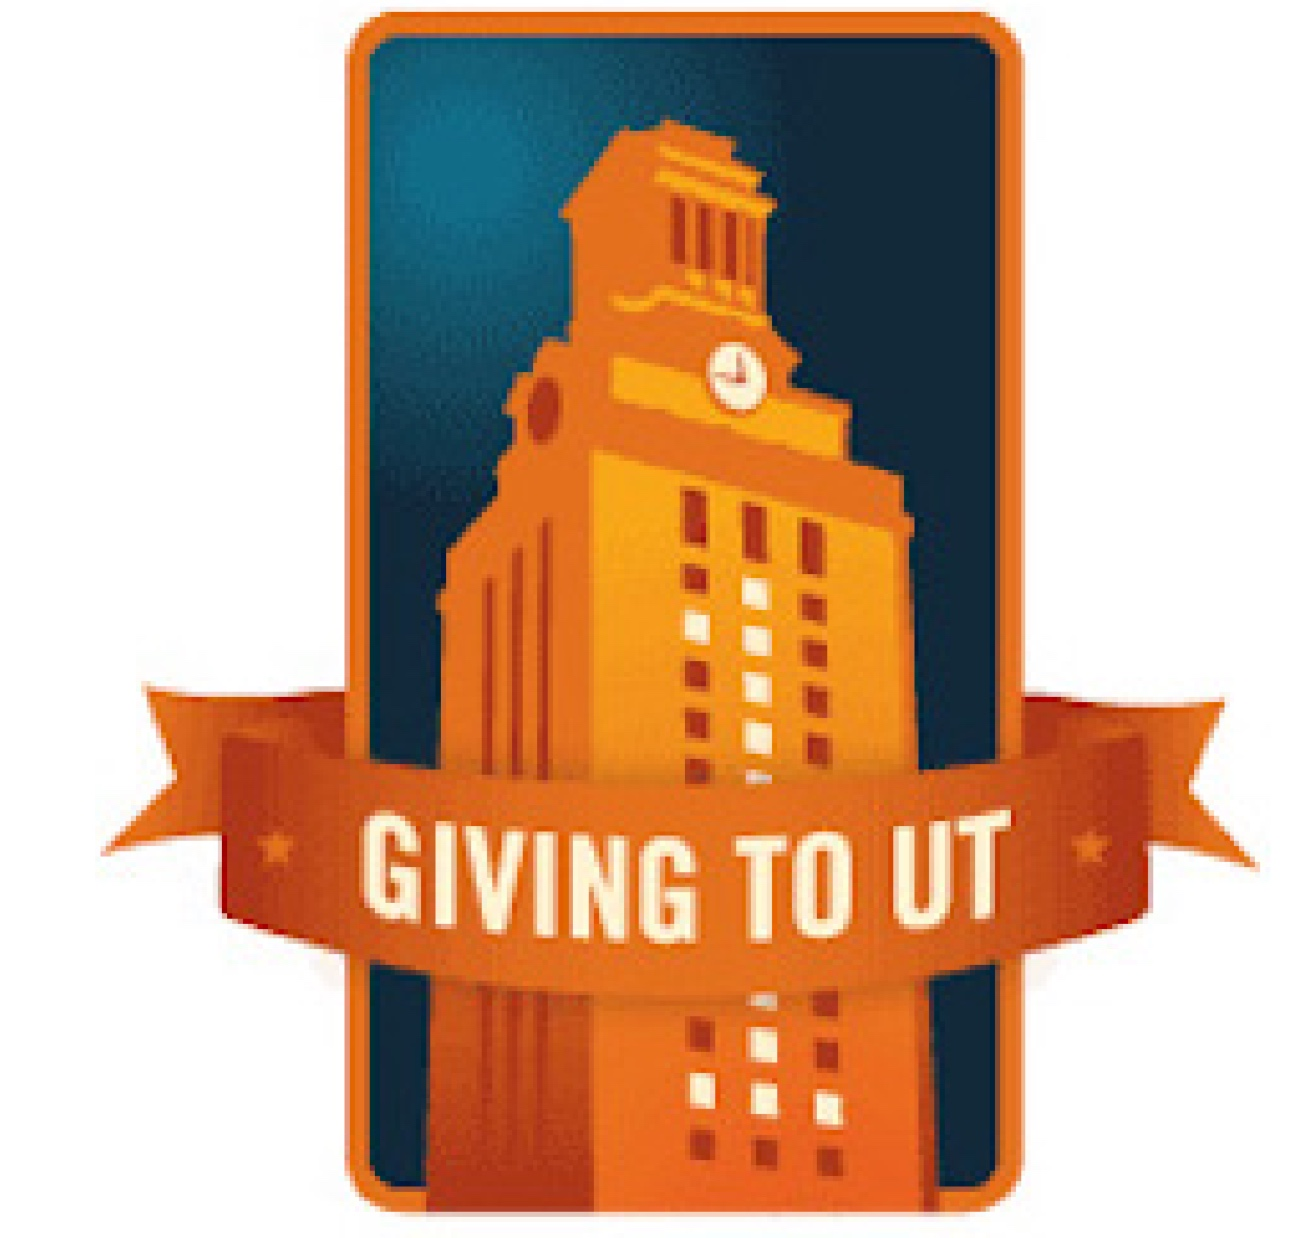 give to ut